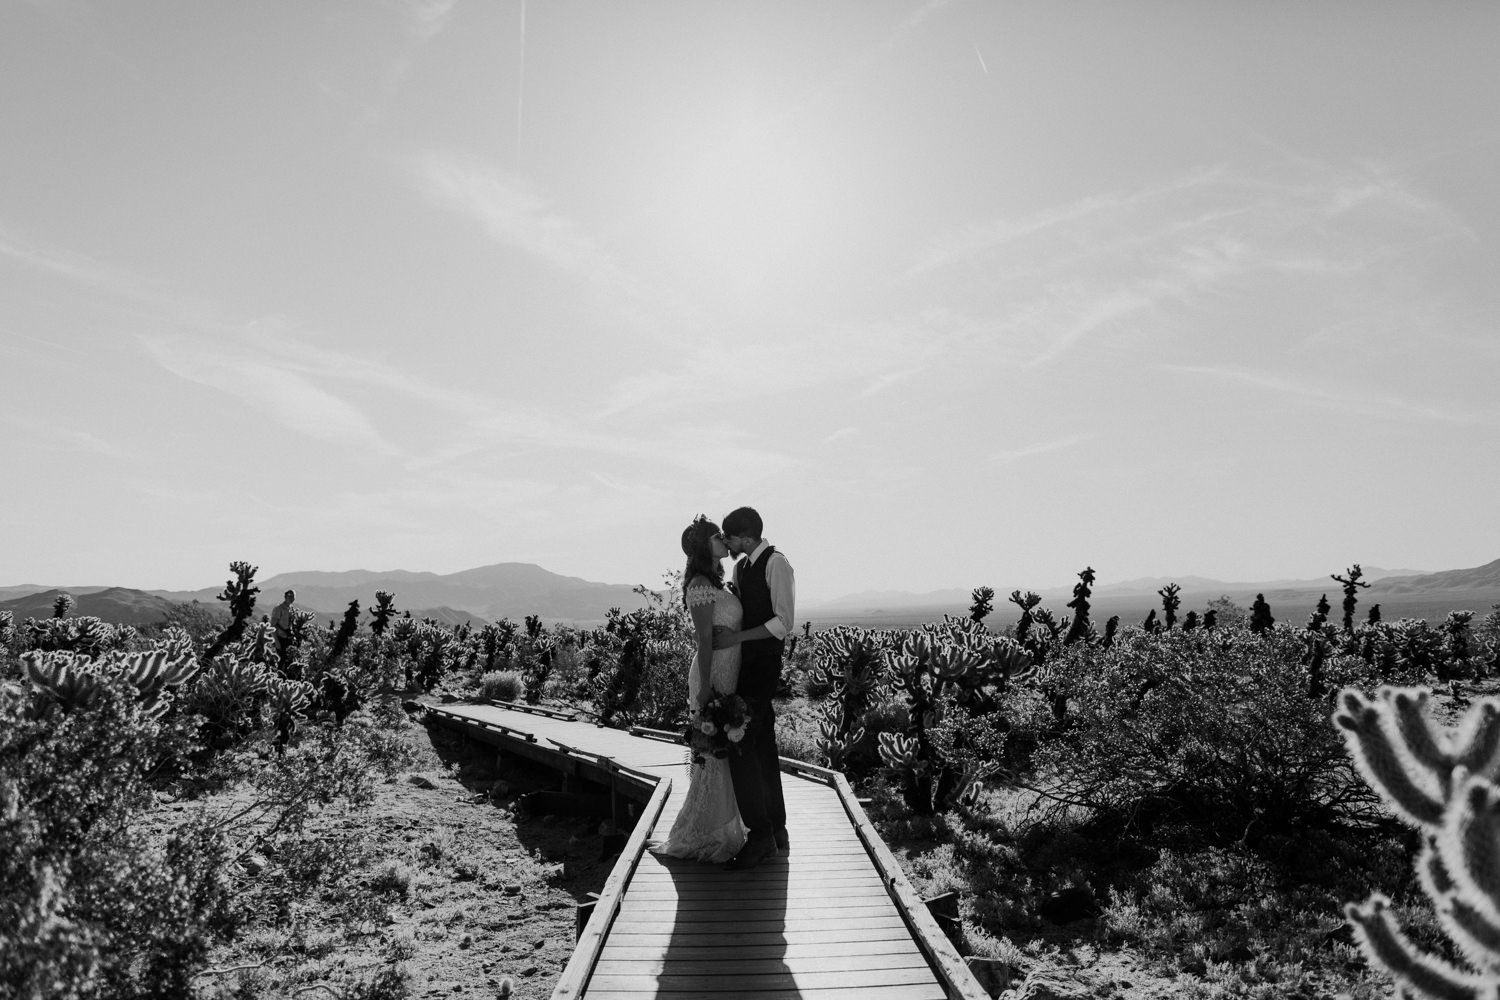 joshua-tree-national-park-elopement-12.jpg